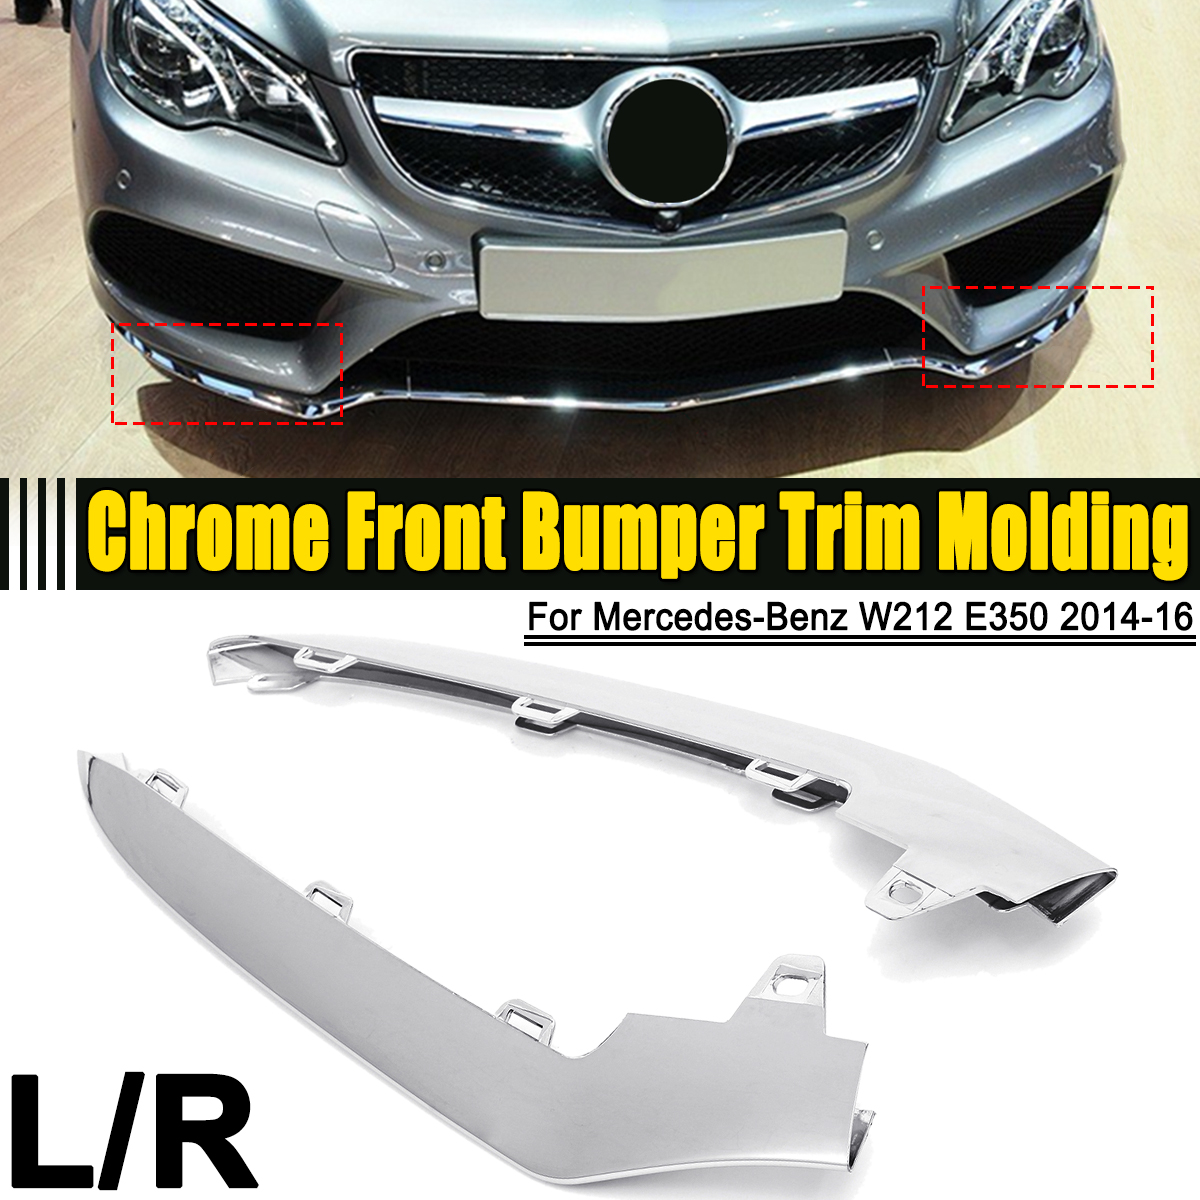 Garage-Pro Fender Liner for MERCEDES BENZ E-CLASS 10-13 FRONT RH Front Section Sedan//Wagon